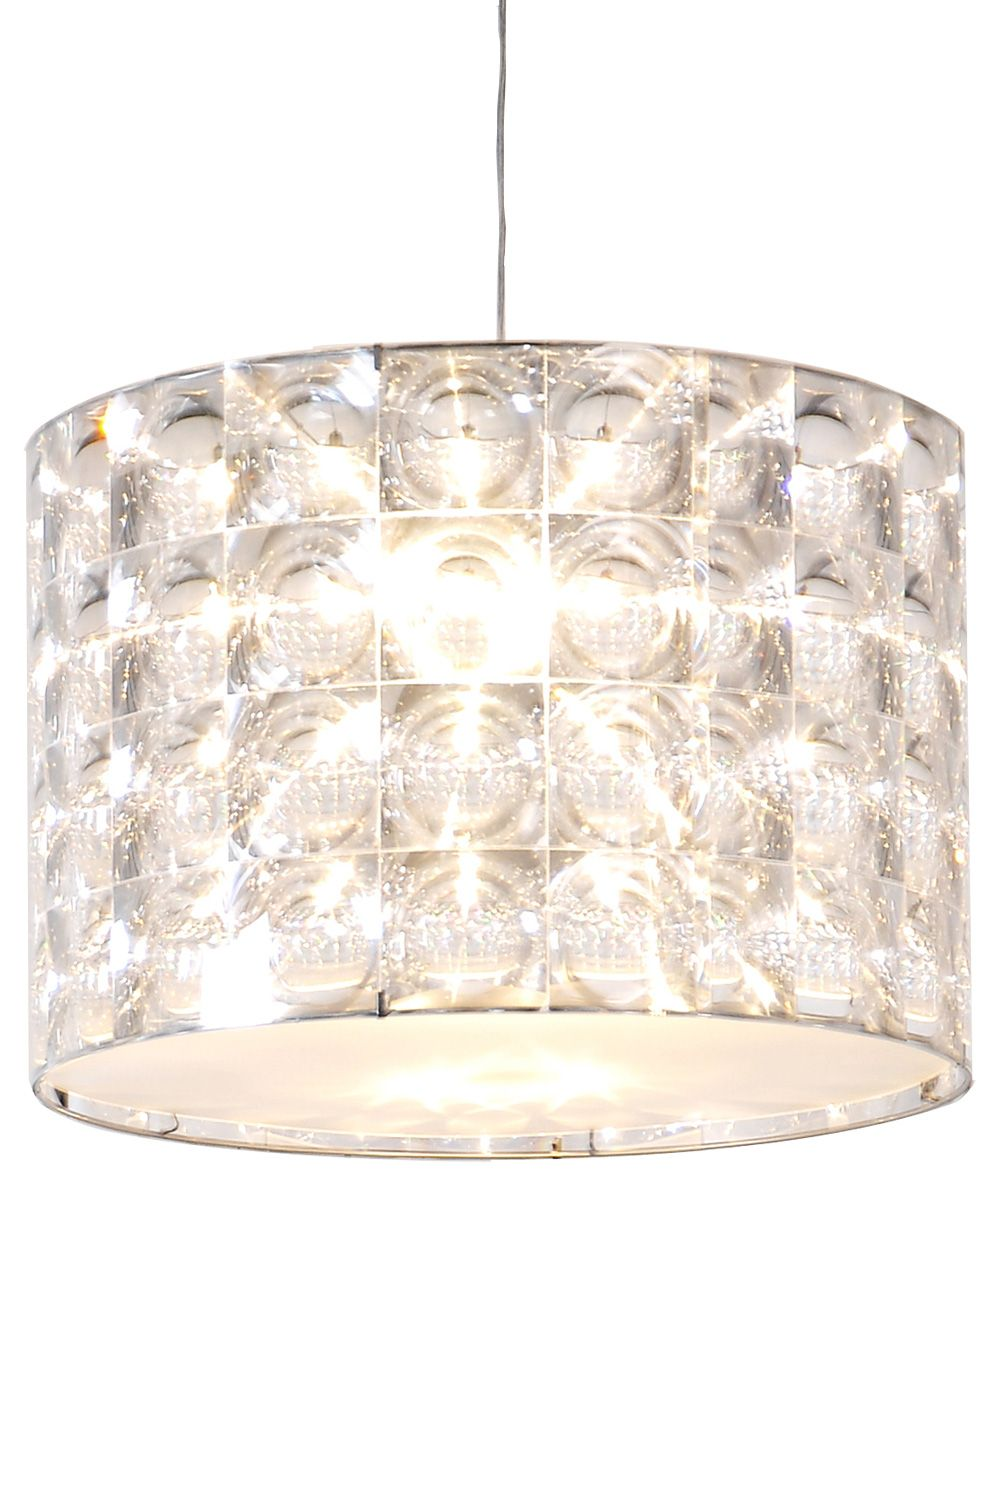 Healus innermost lighthouse extra large pendant shade with